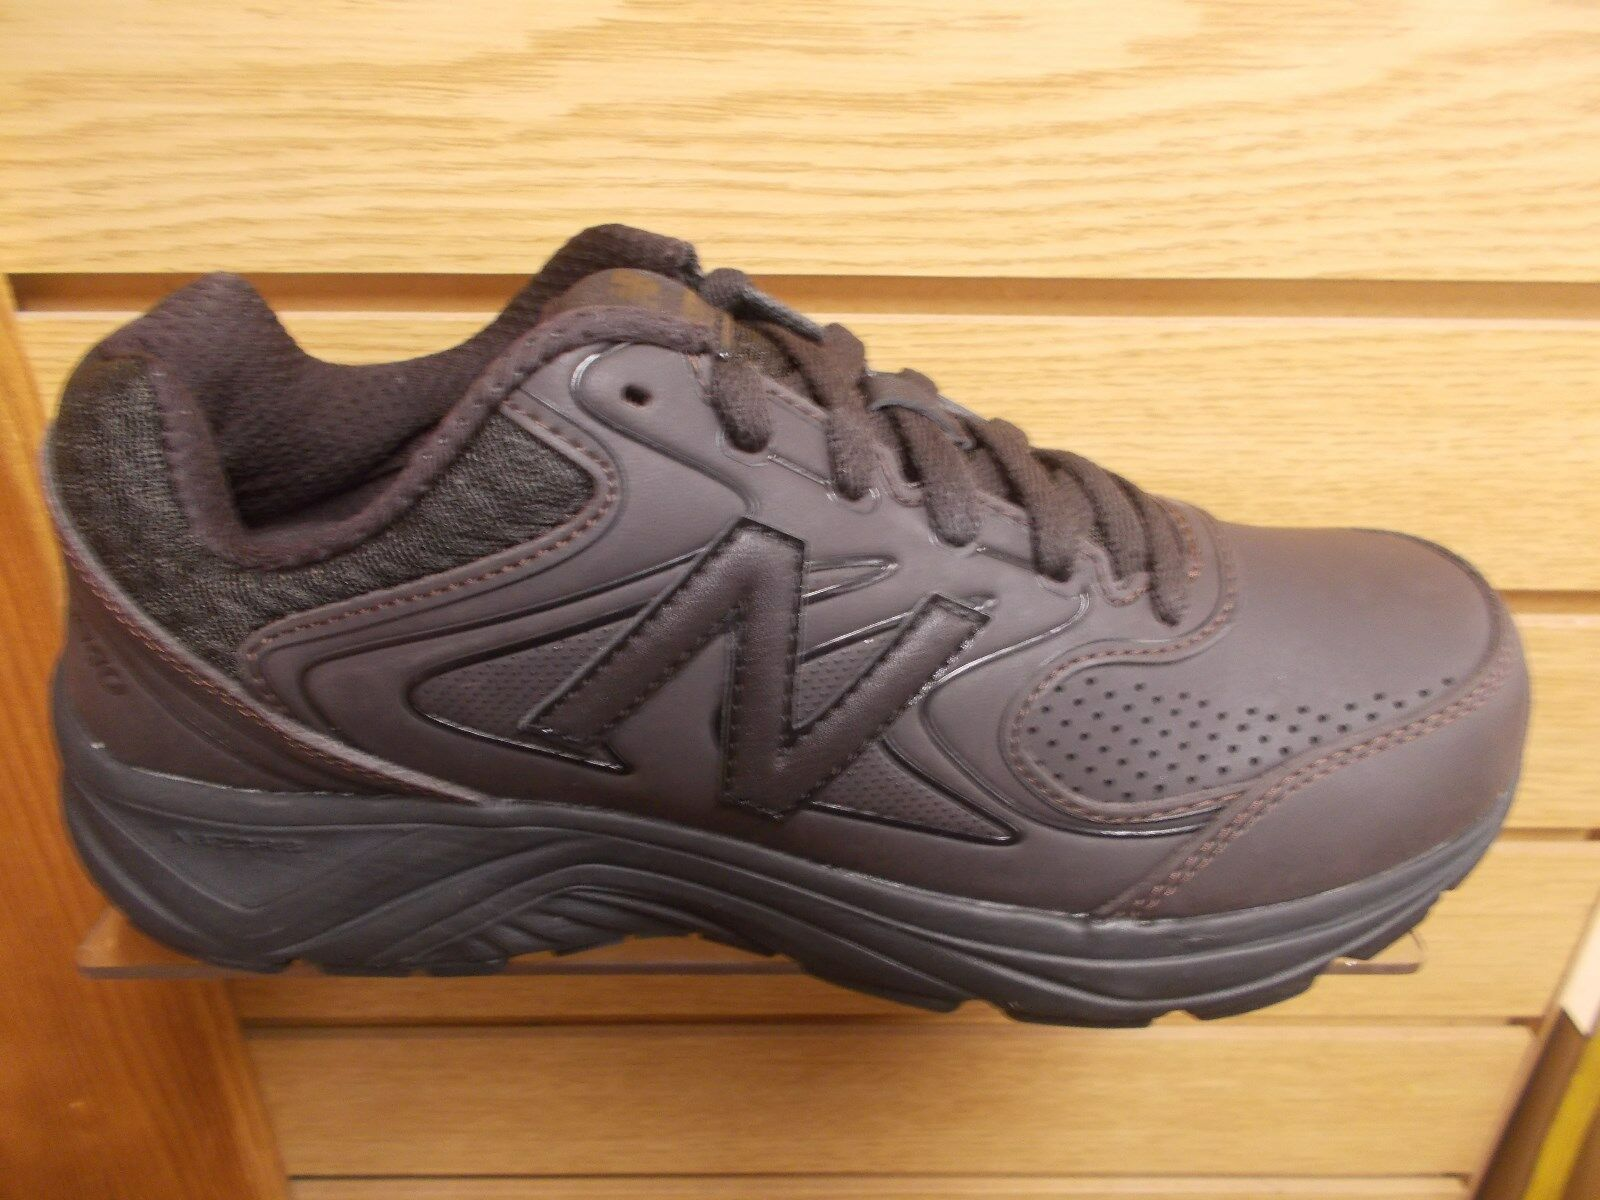 NEW BALANCE MEN'S MW840 V2  WALKING SHOE  EXTRA WIDE 4E WIDTH MULTIPLE SIZES NEW